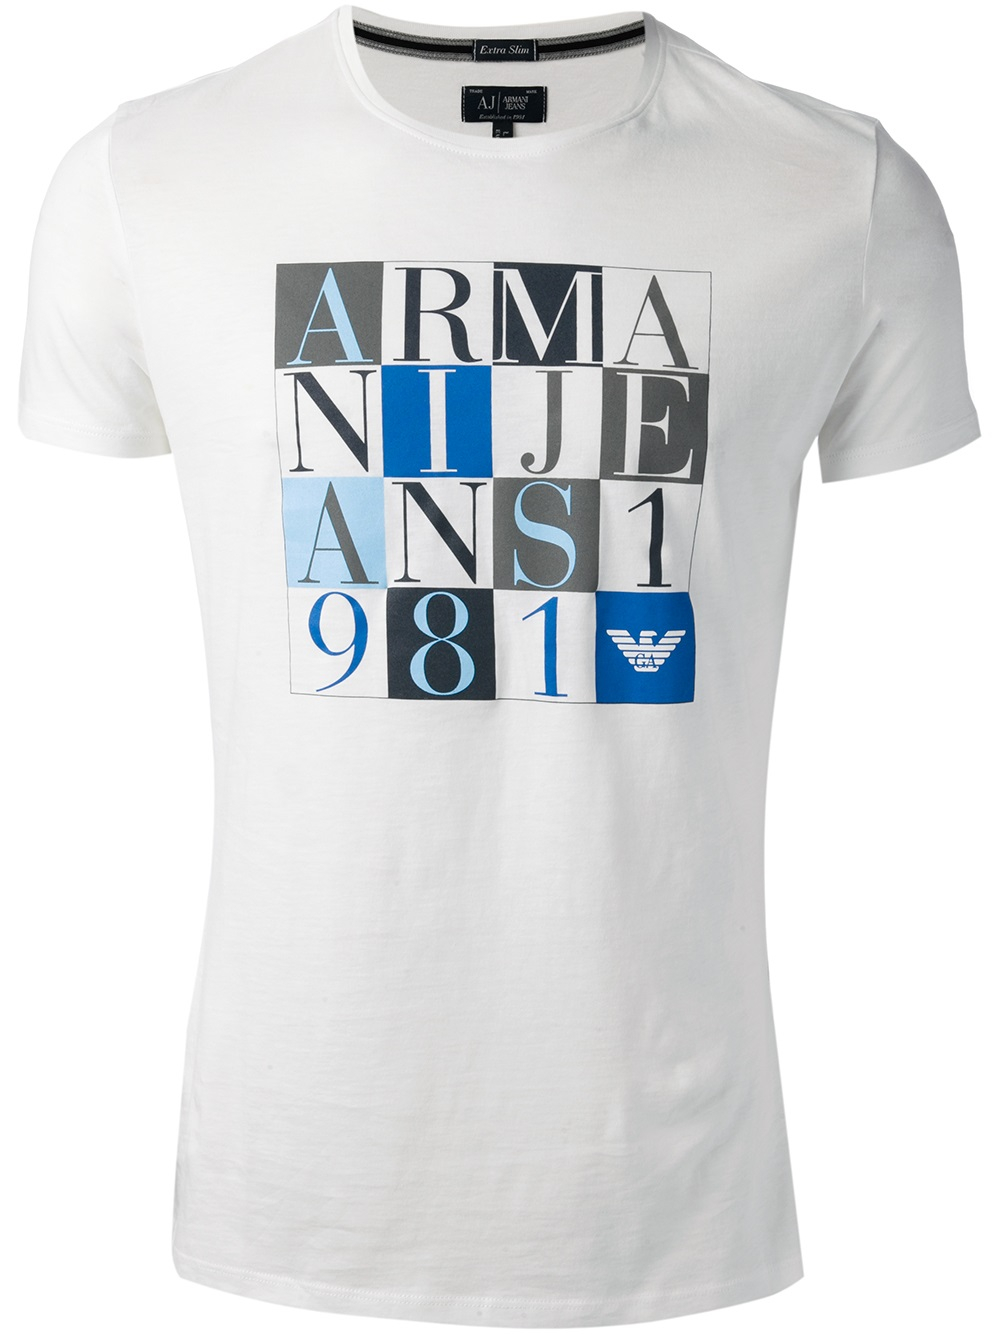 lyst armani jeans logo t shirt in white for men. Black Bedroom Furniture Sets. Home Design Ideas